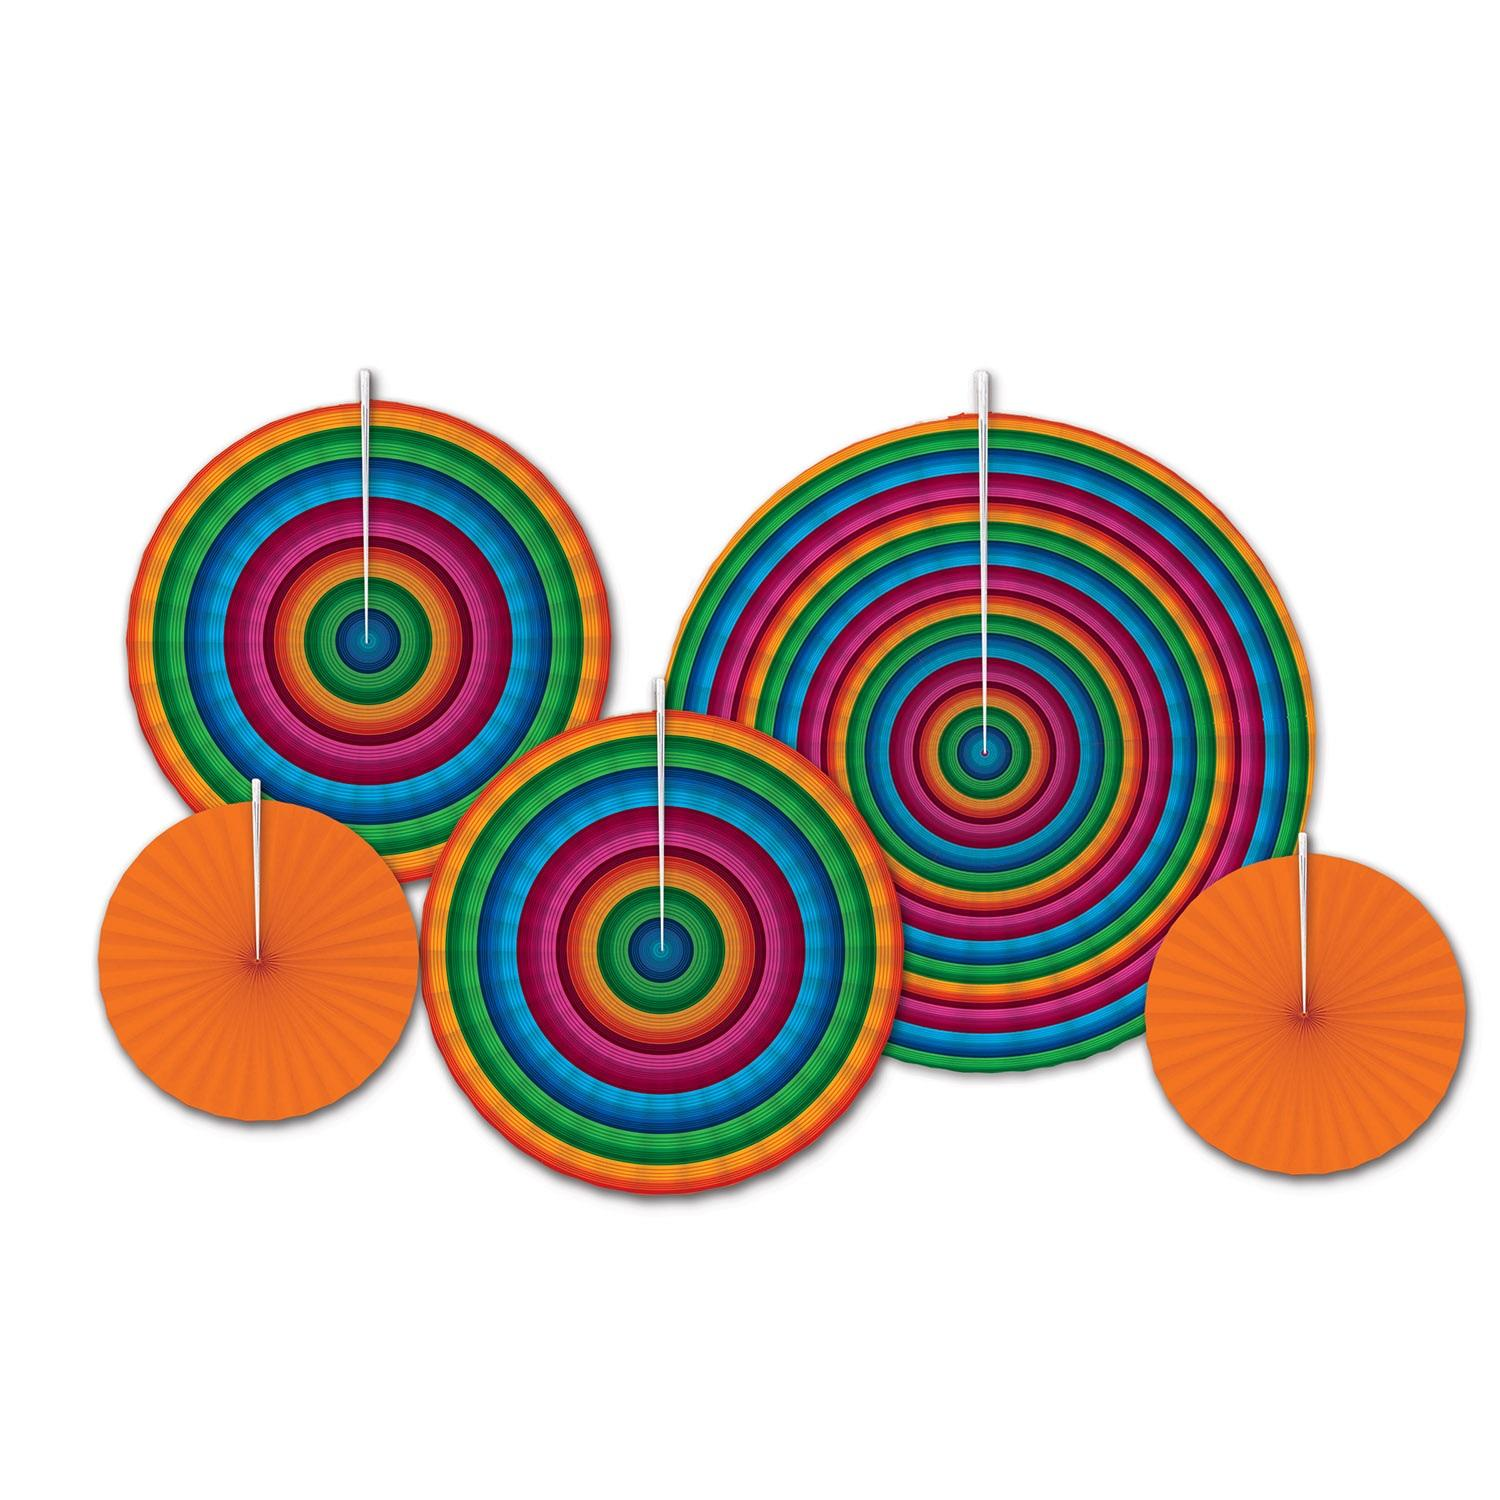 Club Pack of 60 Celebratory Decorative Orange and Rainbow Paper Party Hanging Fans 16""